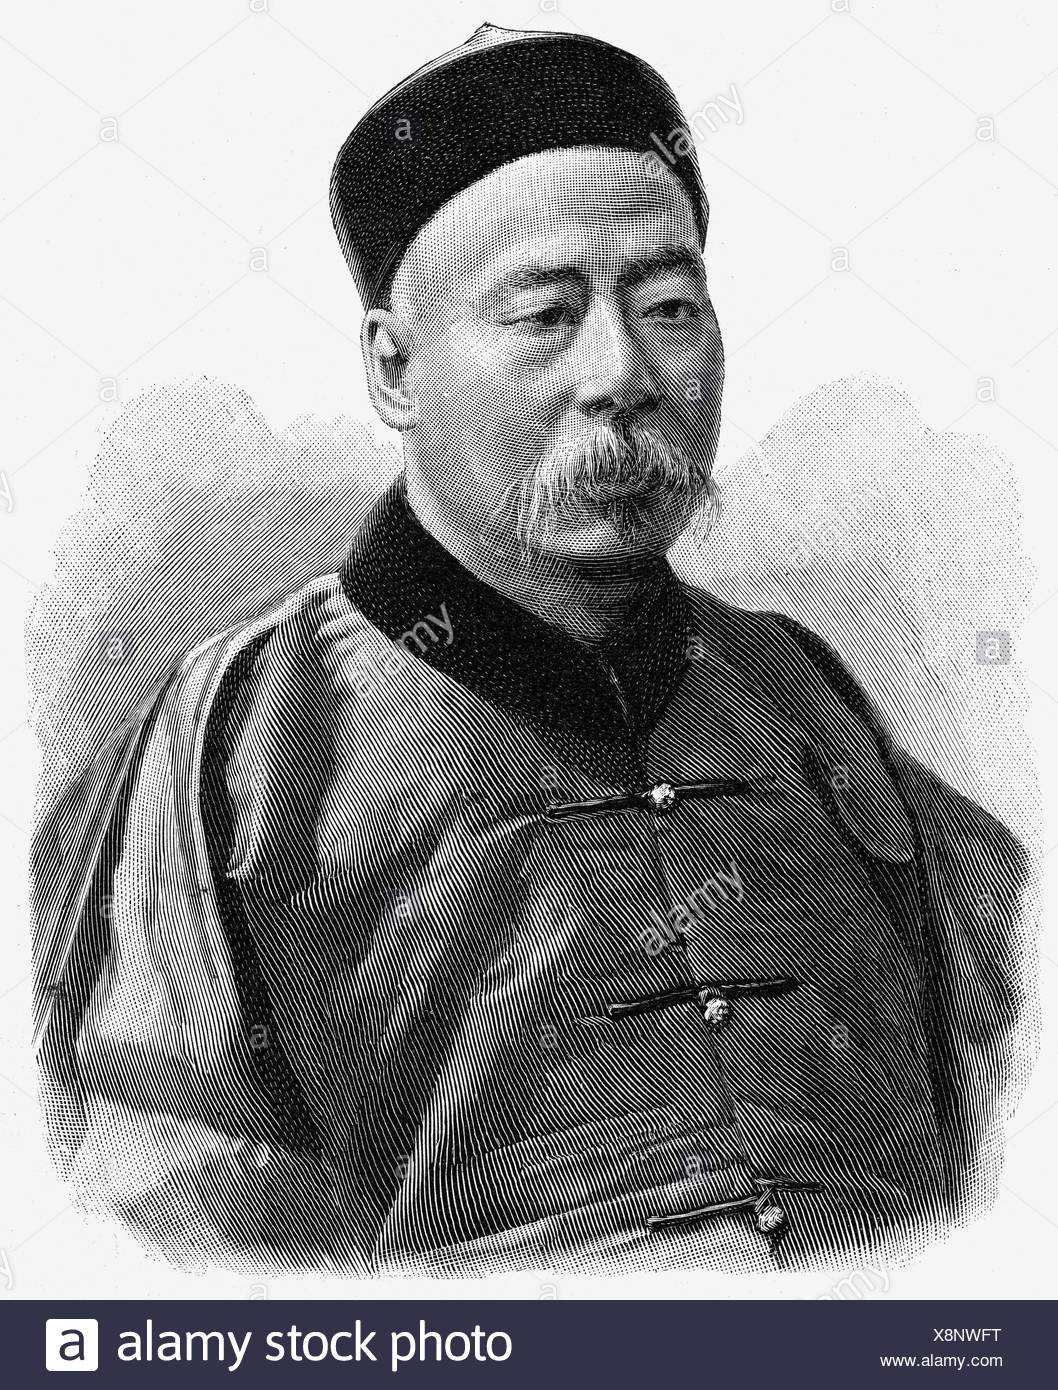 Huan, Lii Hai, second half of the 19th century, Chinese politician, envoy in Berlin, portrait, wood engraving, , Additional-Rights-Clearances-NA - Stock Image